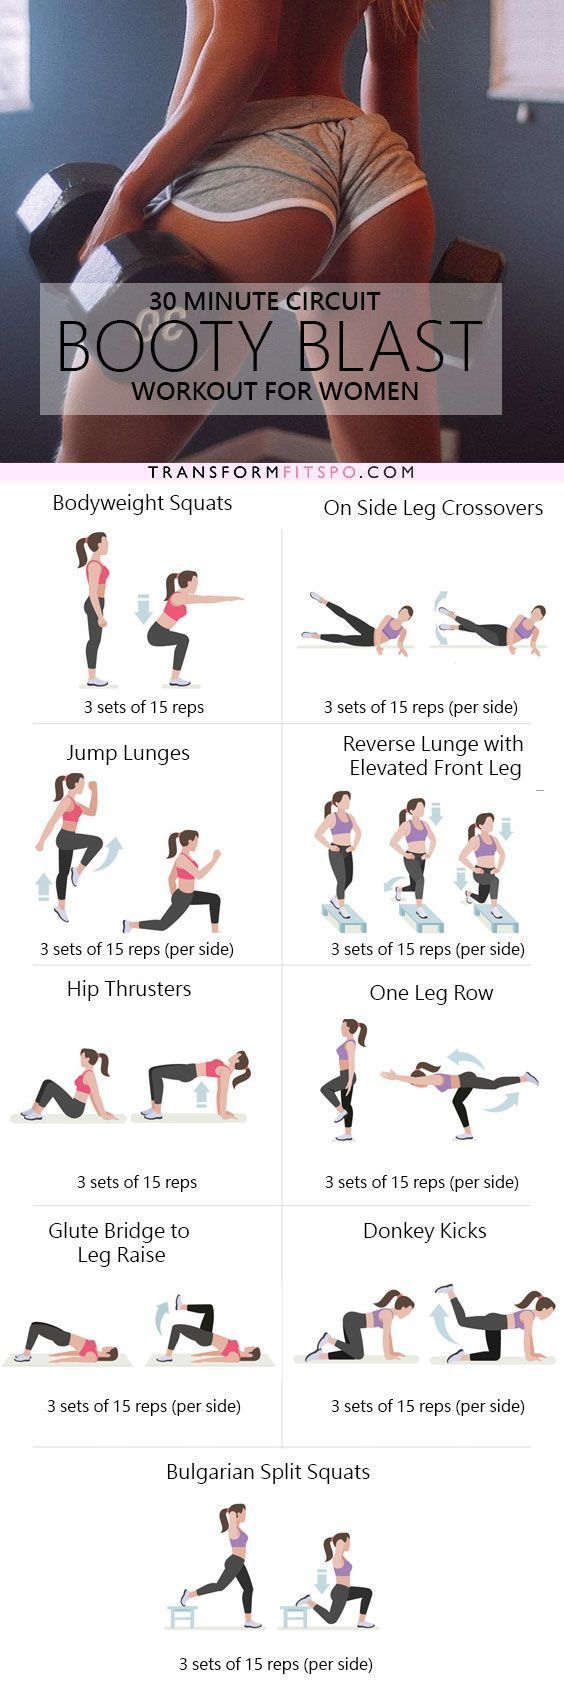 30 Minute Booty Blast Workout for Women.  Follow Personal Trainer at Pinterest.com/SuperDFitness Now!